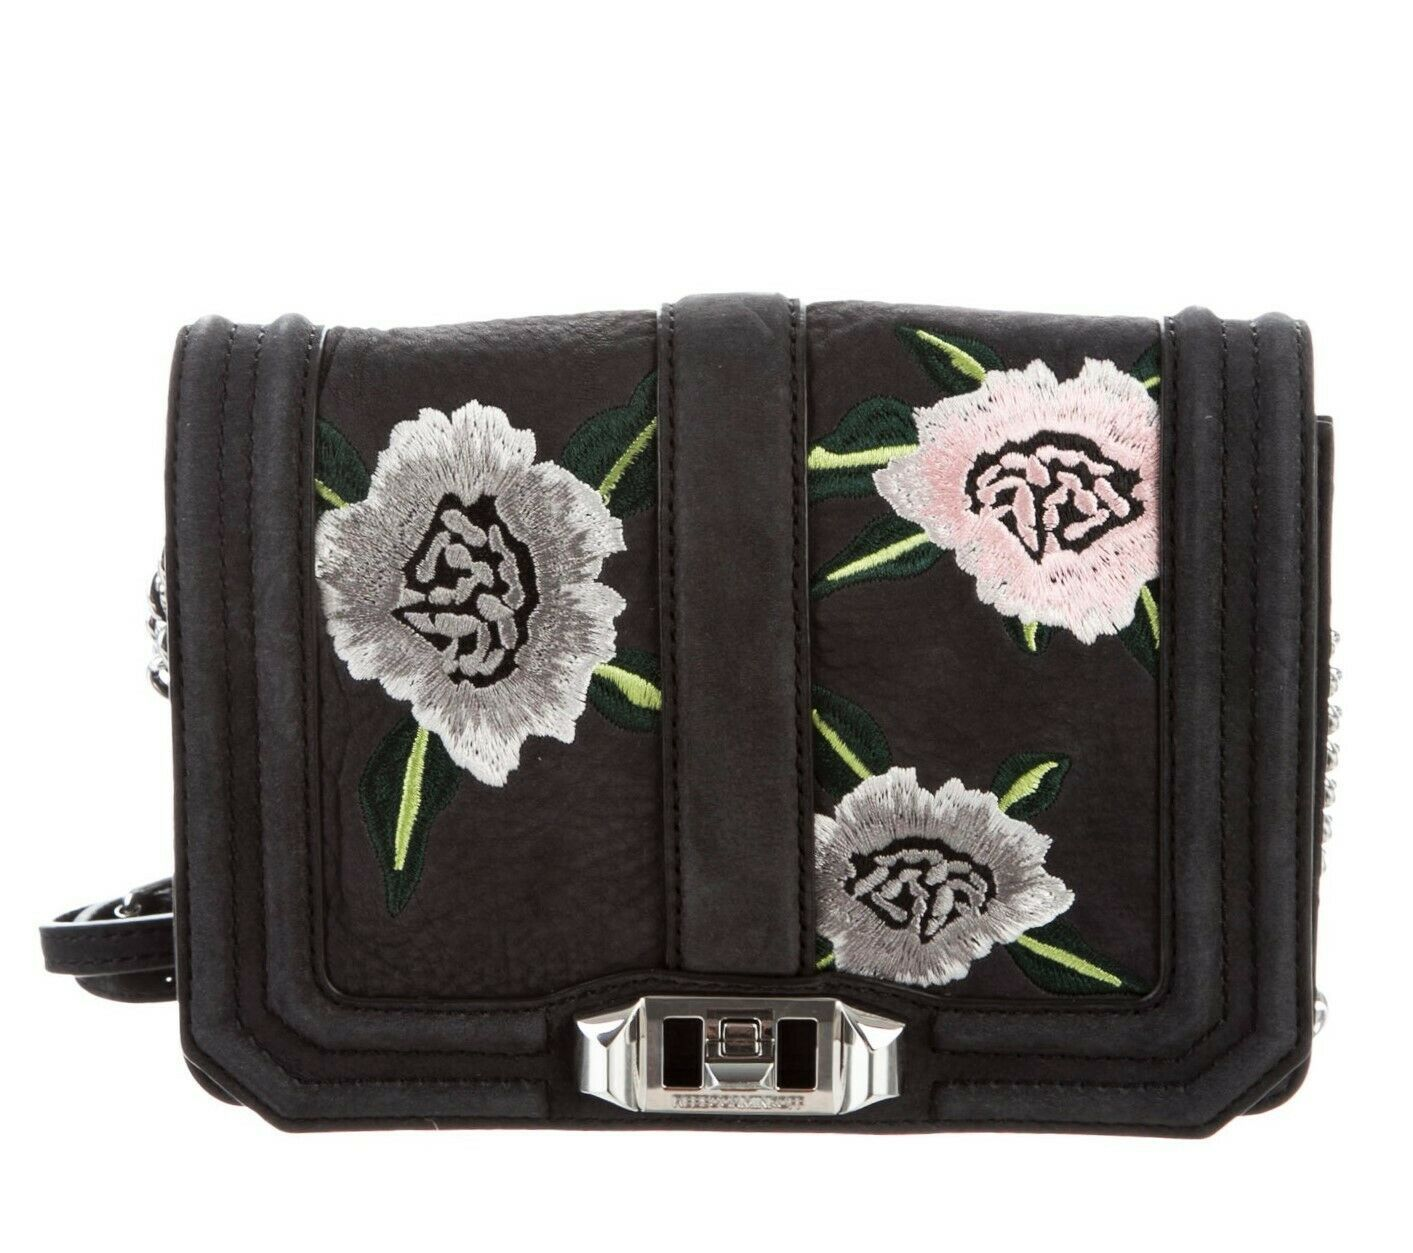 Primary image for Rebecca Minkoff Small Love Embroidered Nubuck Crossbody Bag - Black